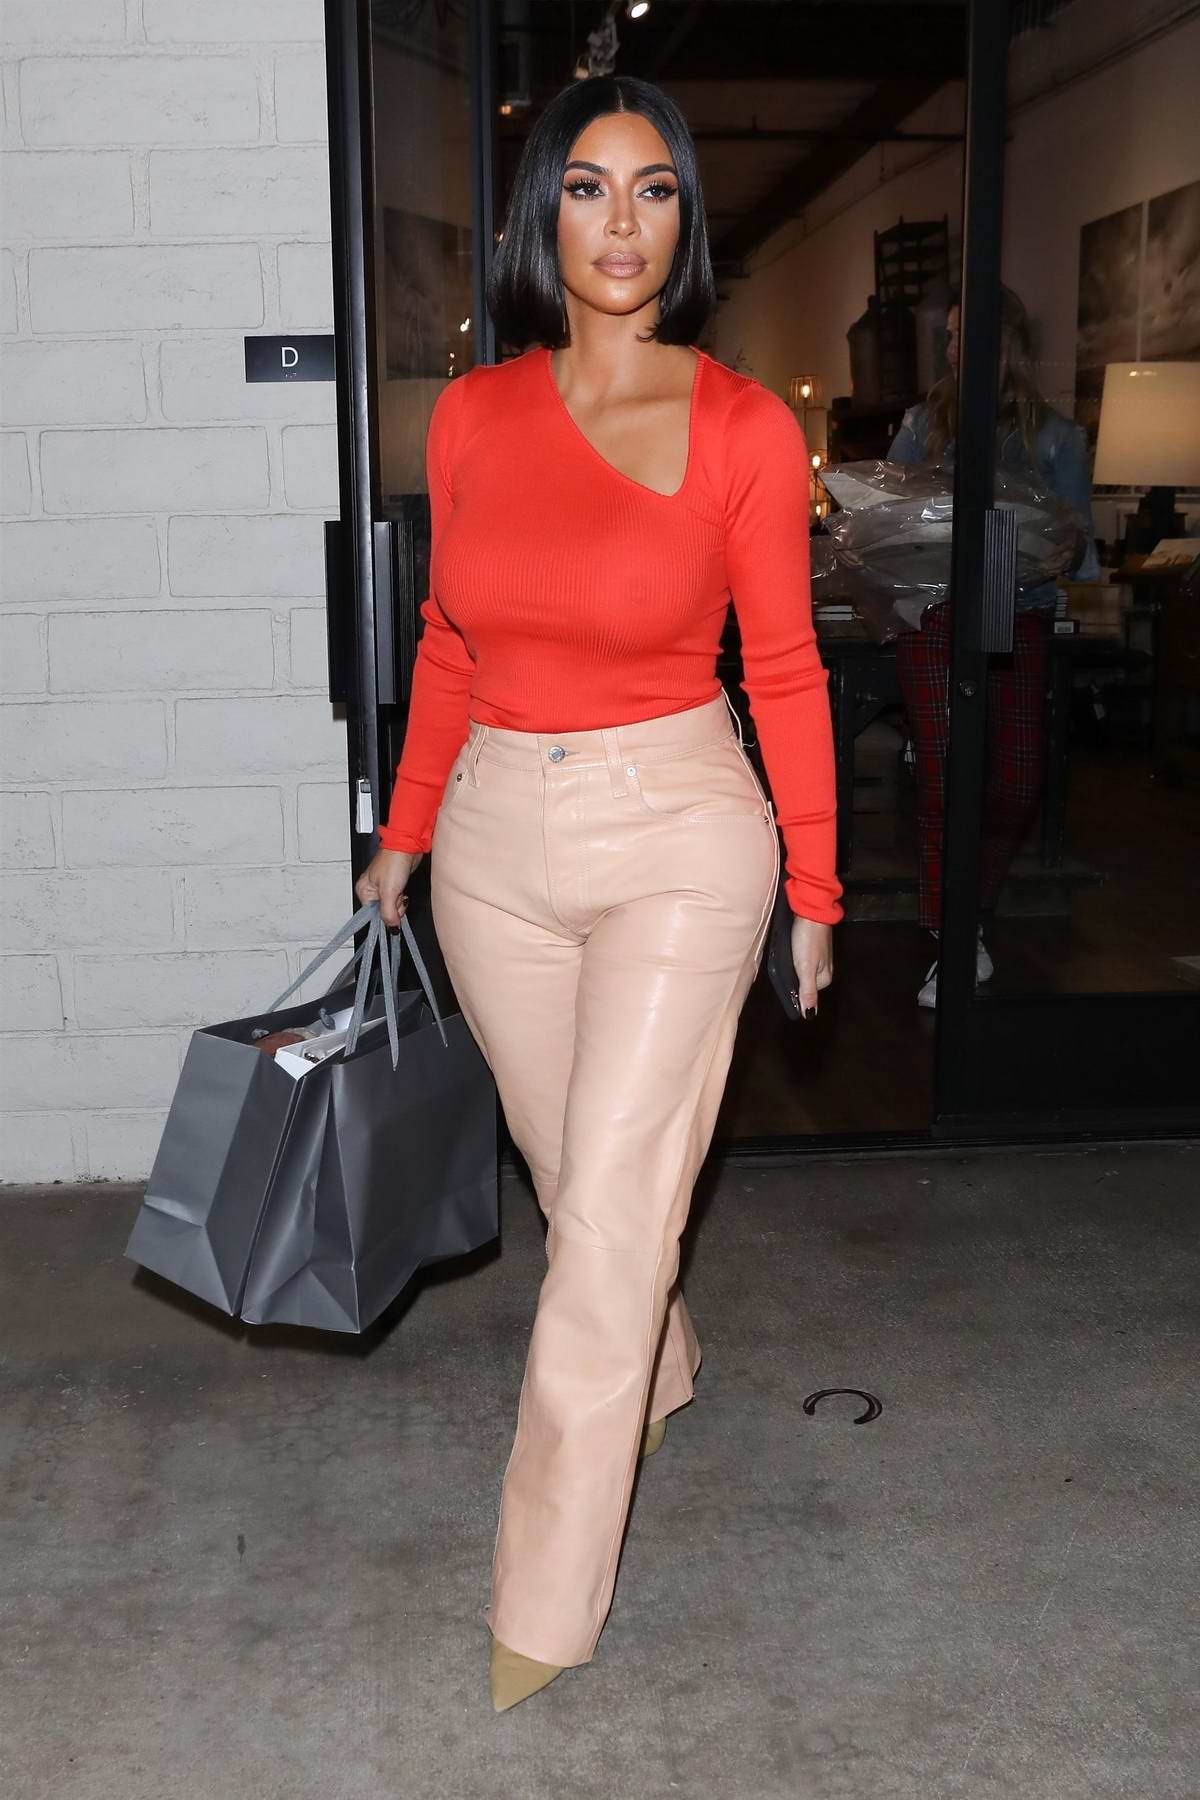 Kim Kardashian stands out in a bright orange top while out shopping at 'A Beautiful Mess' in Agoura Hills, California